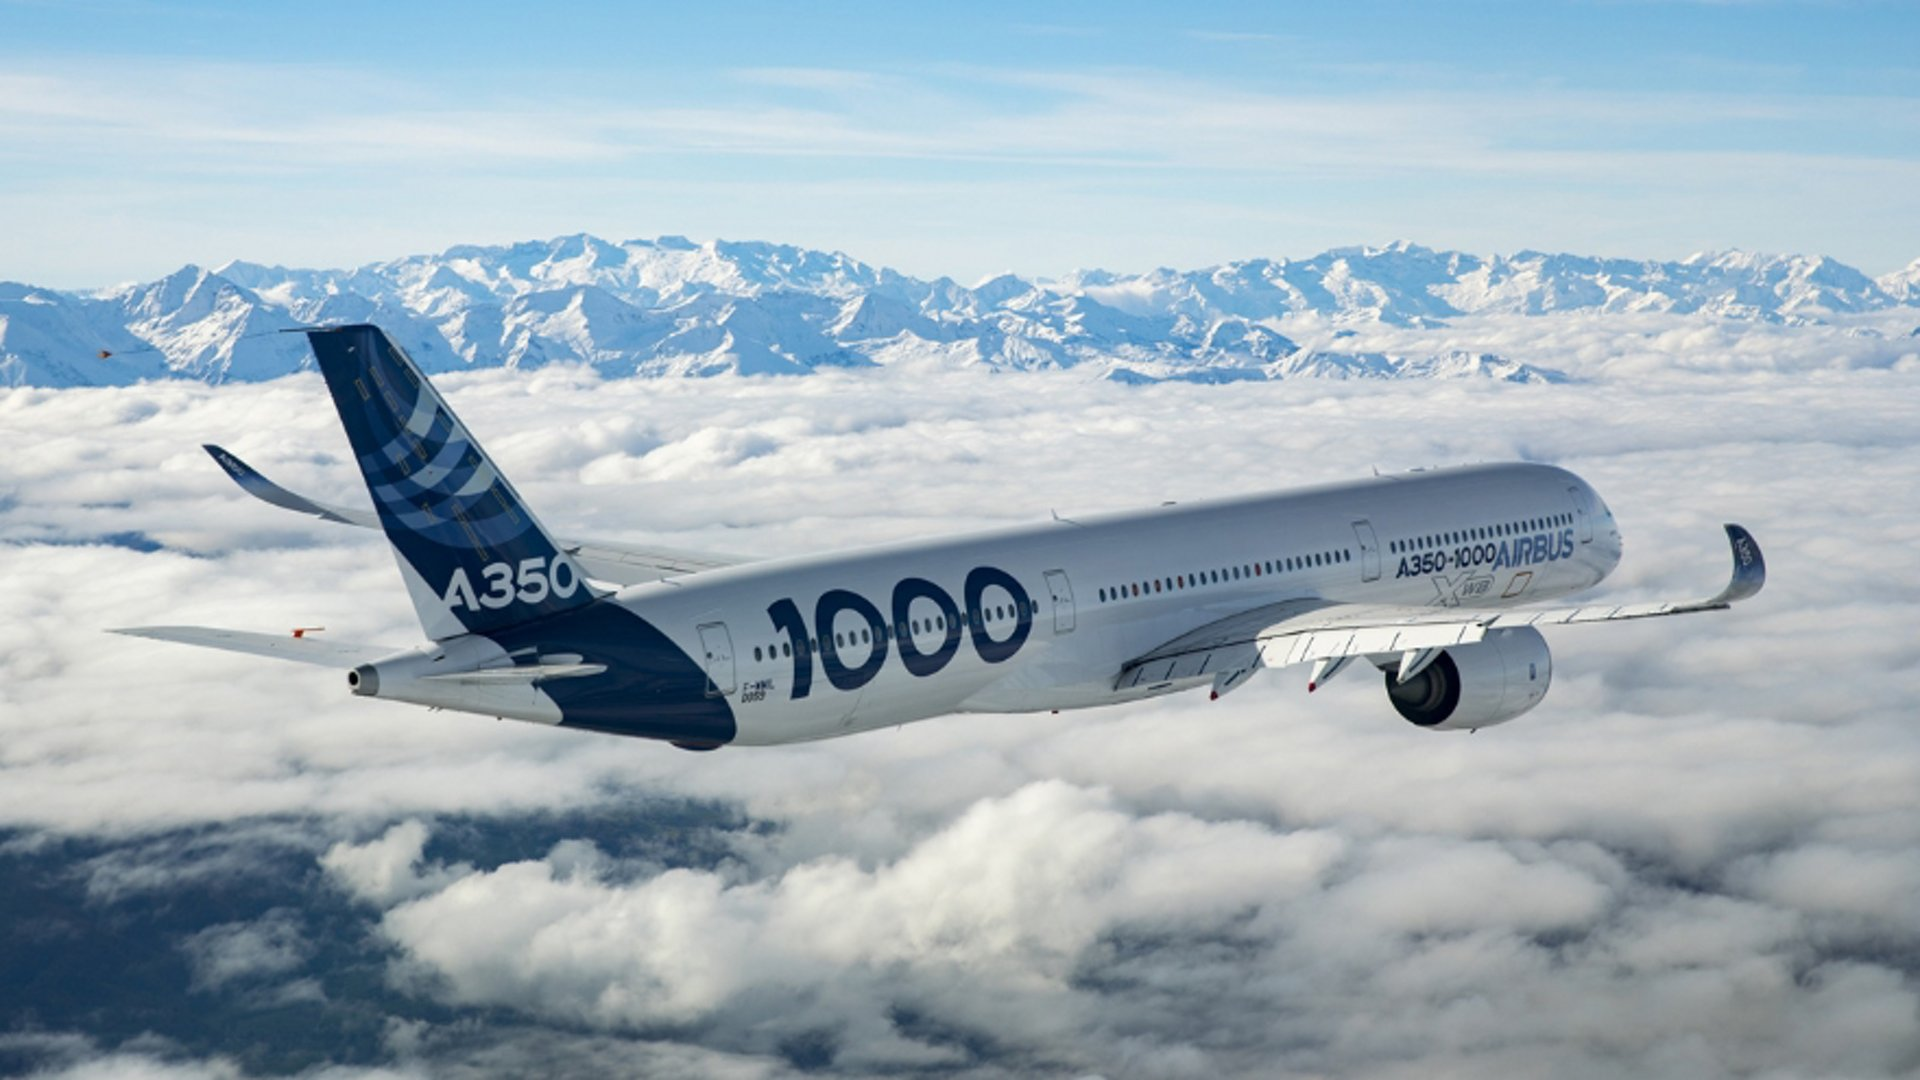 About Airbus A350